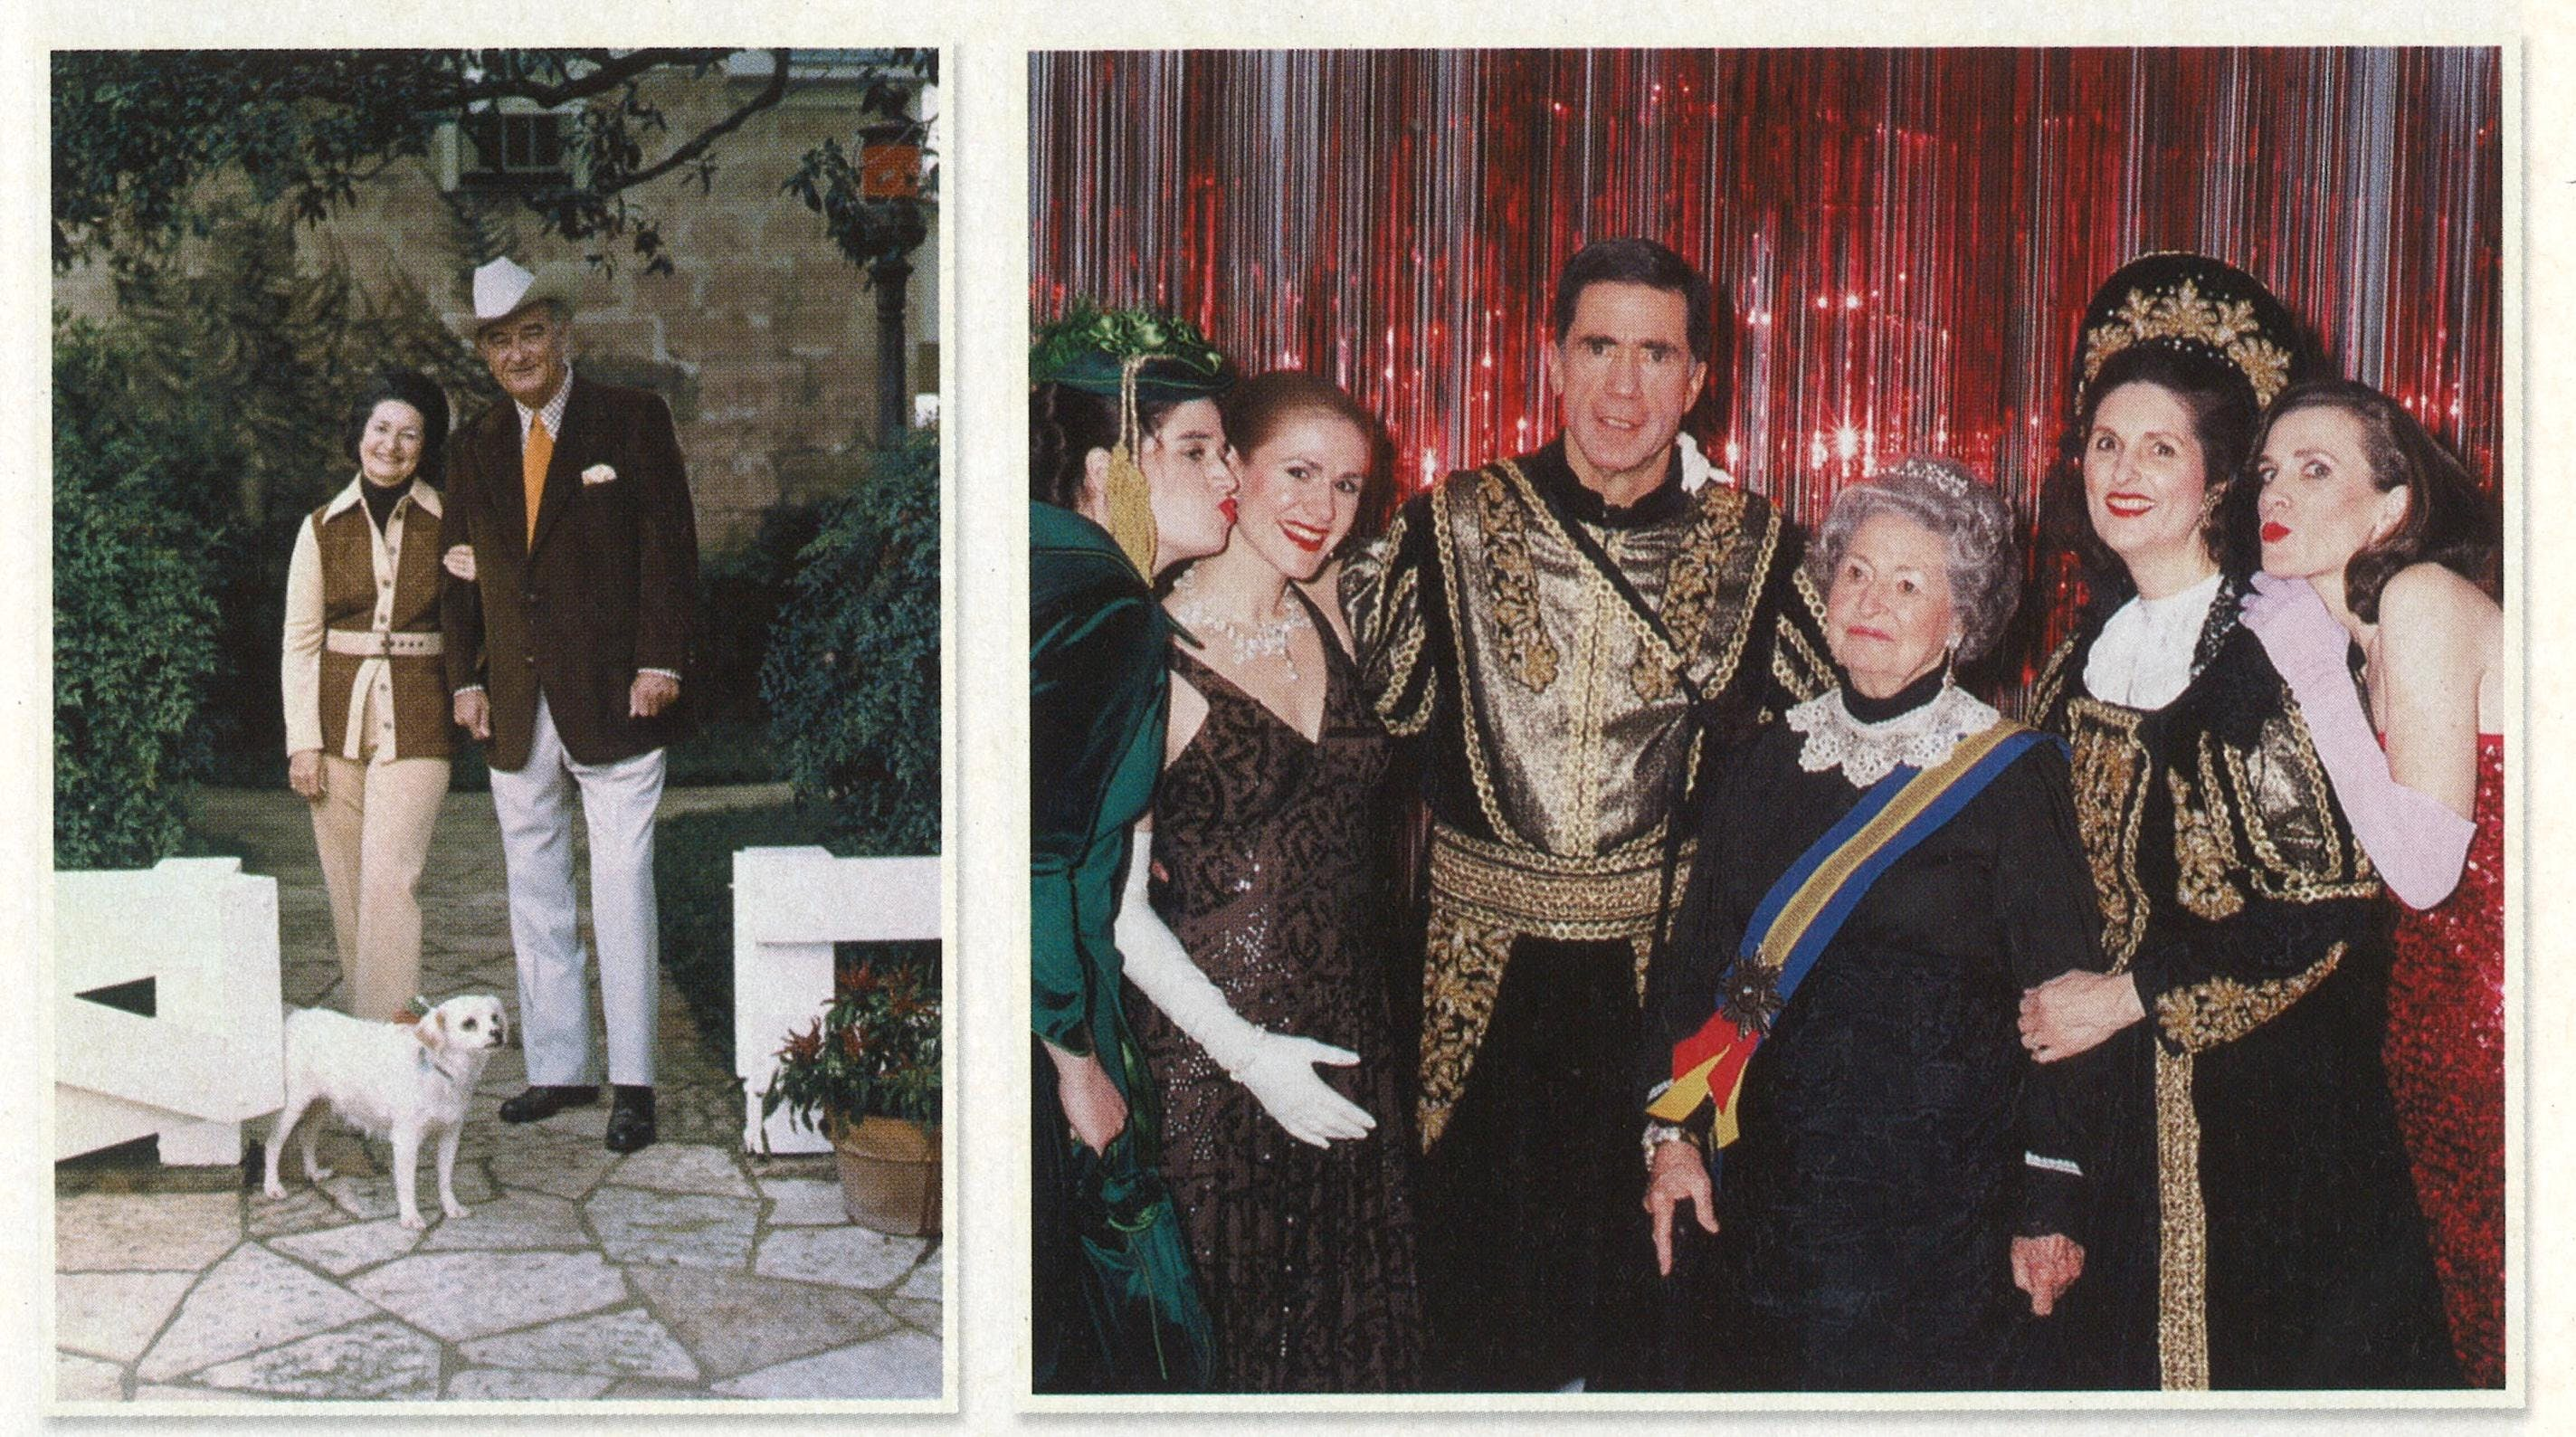 From left: The Johnsons at the ranch a few days before their thirty-eighth wedding anniversary, 1972. With (from left) granddaughters Jennifer and Lucinda Robb, son-in-law Charles Robb, daughter Lynda Robb, and granddaughter Catherine Robb at a costume party in 2003.